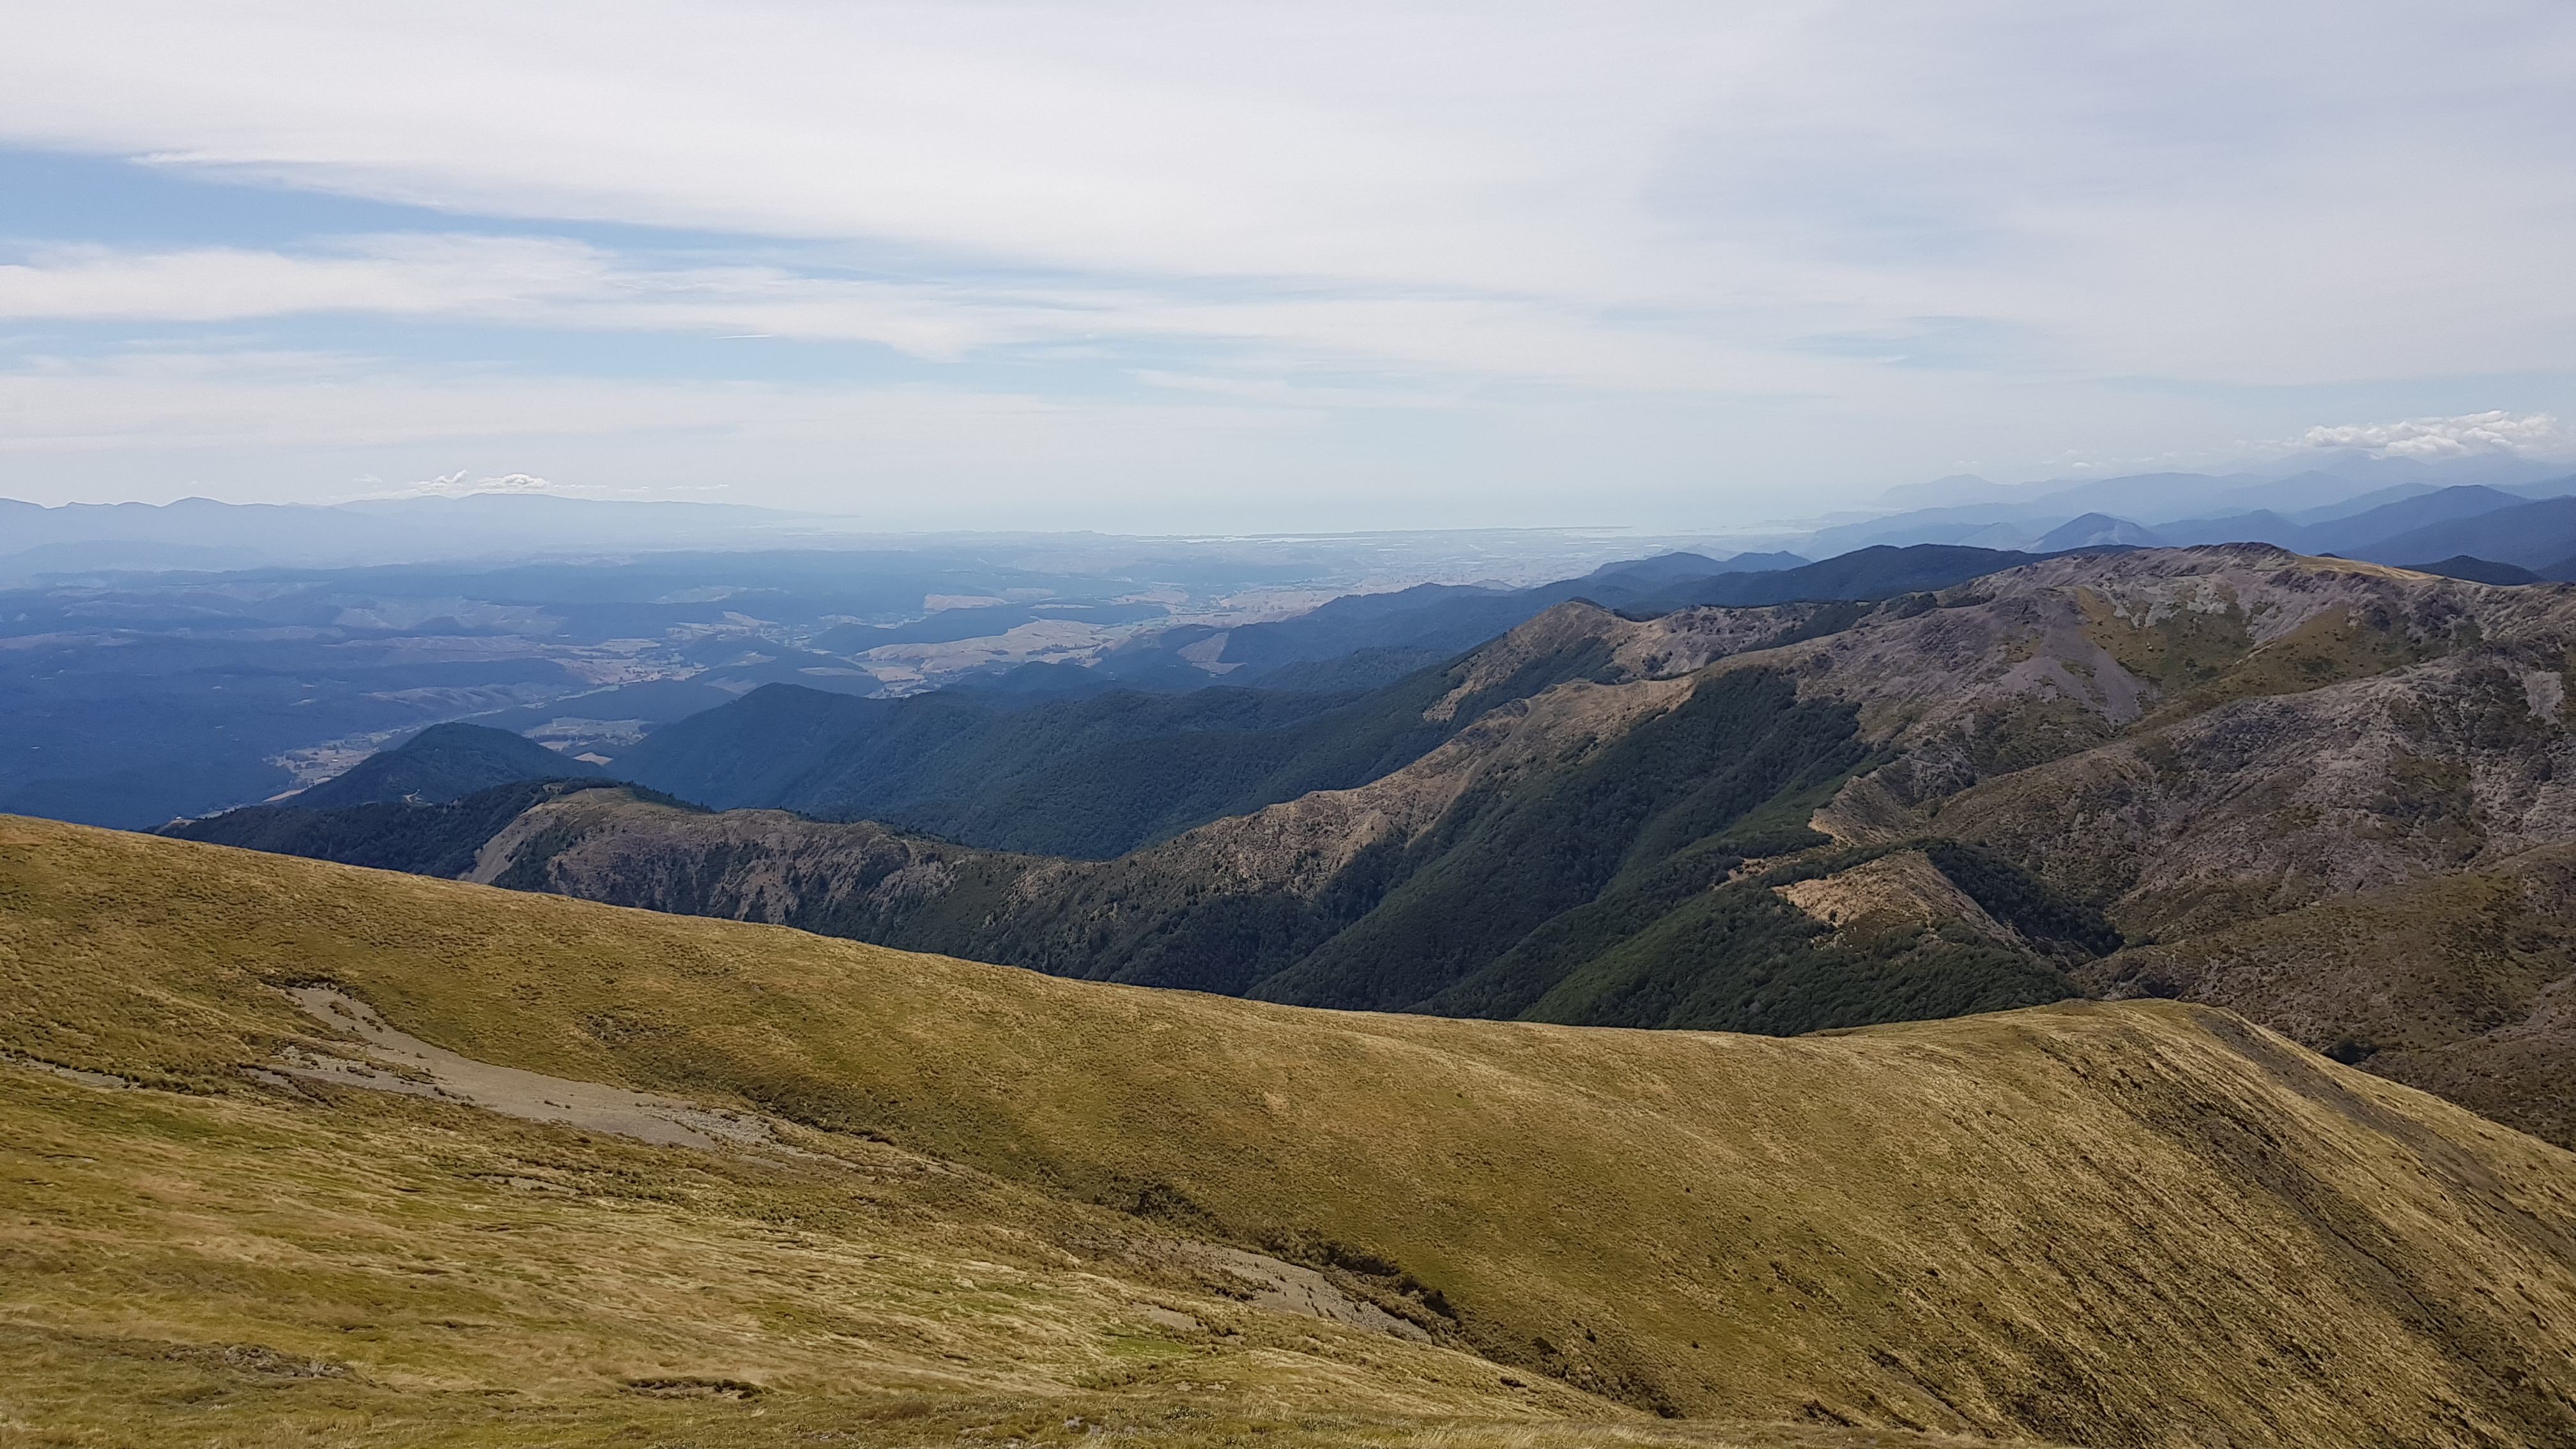 Heading back down from the Gordon Tops with Tasman Bay in the distance